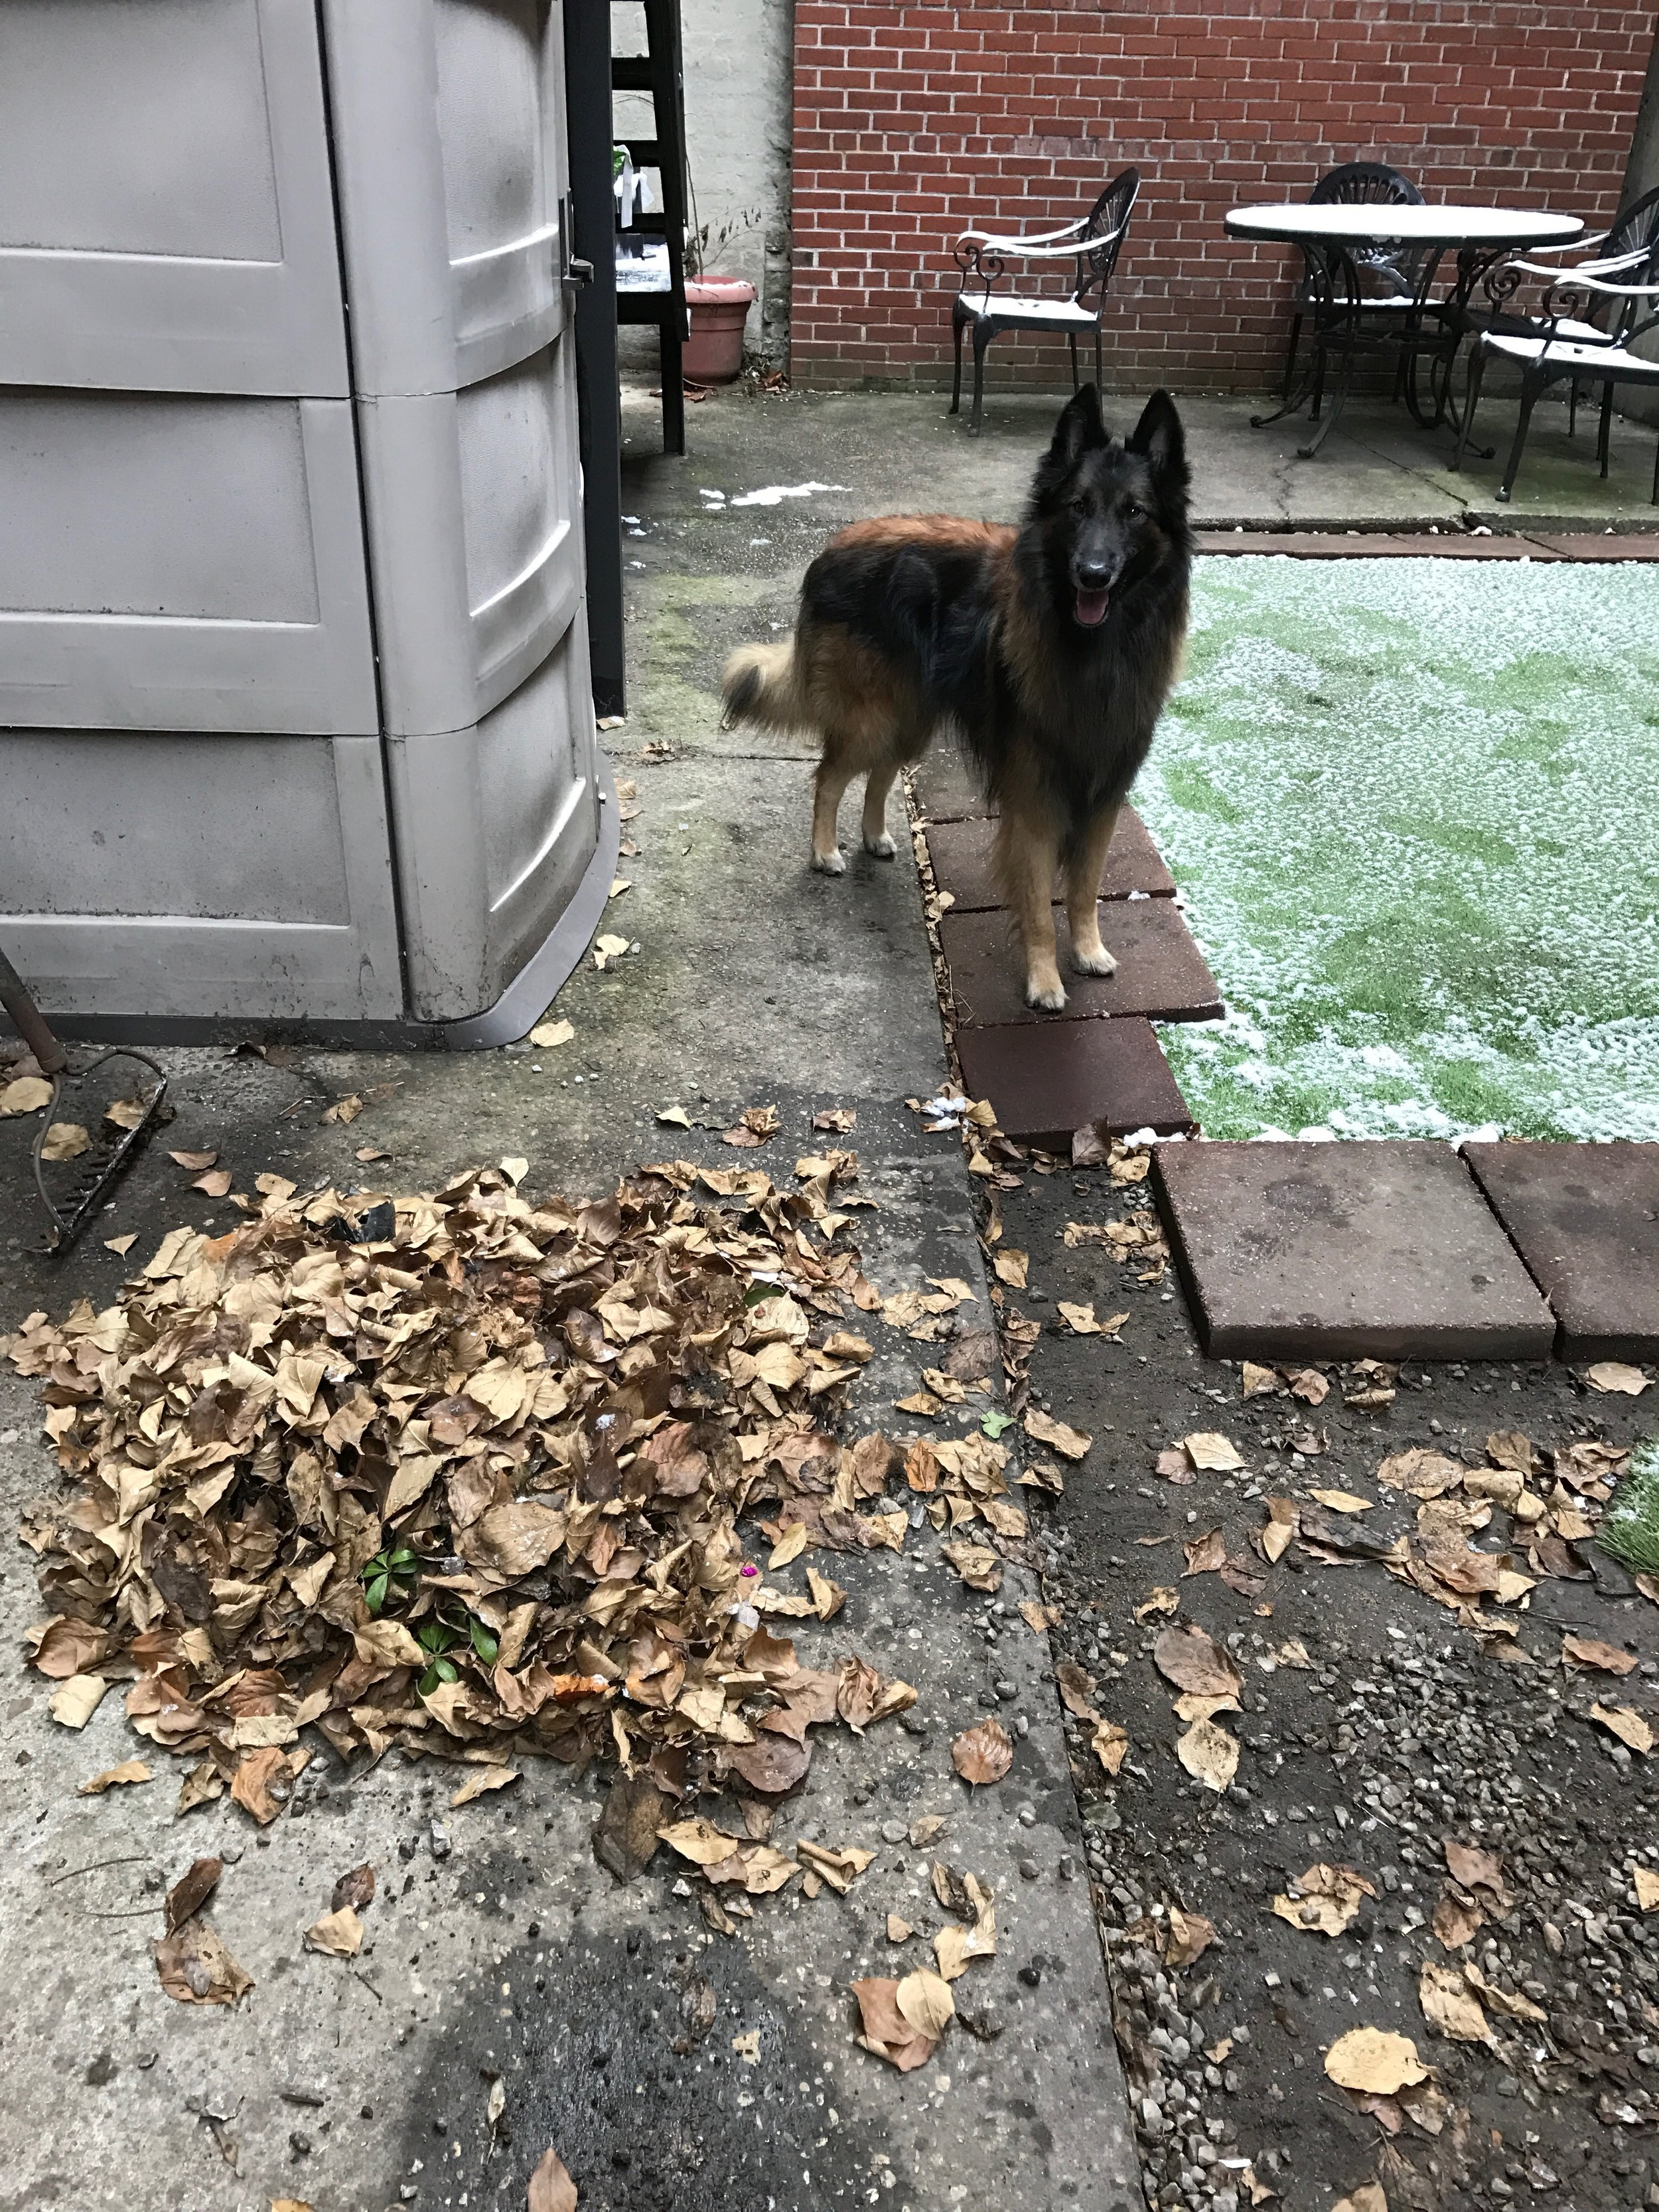 Moki waiting to jump into the raked leaves before I have a chance to bag them